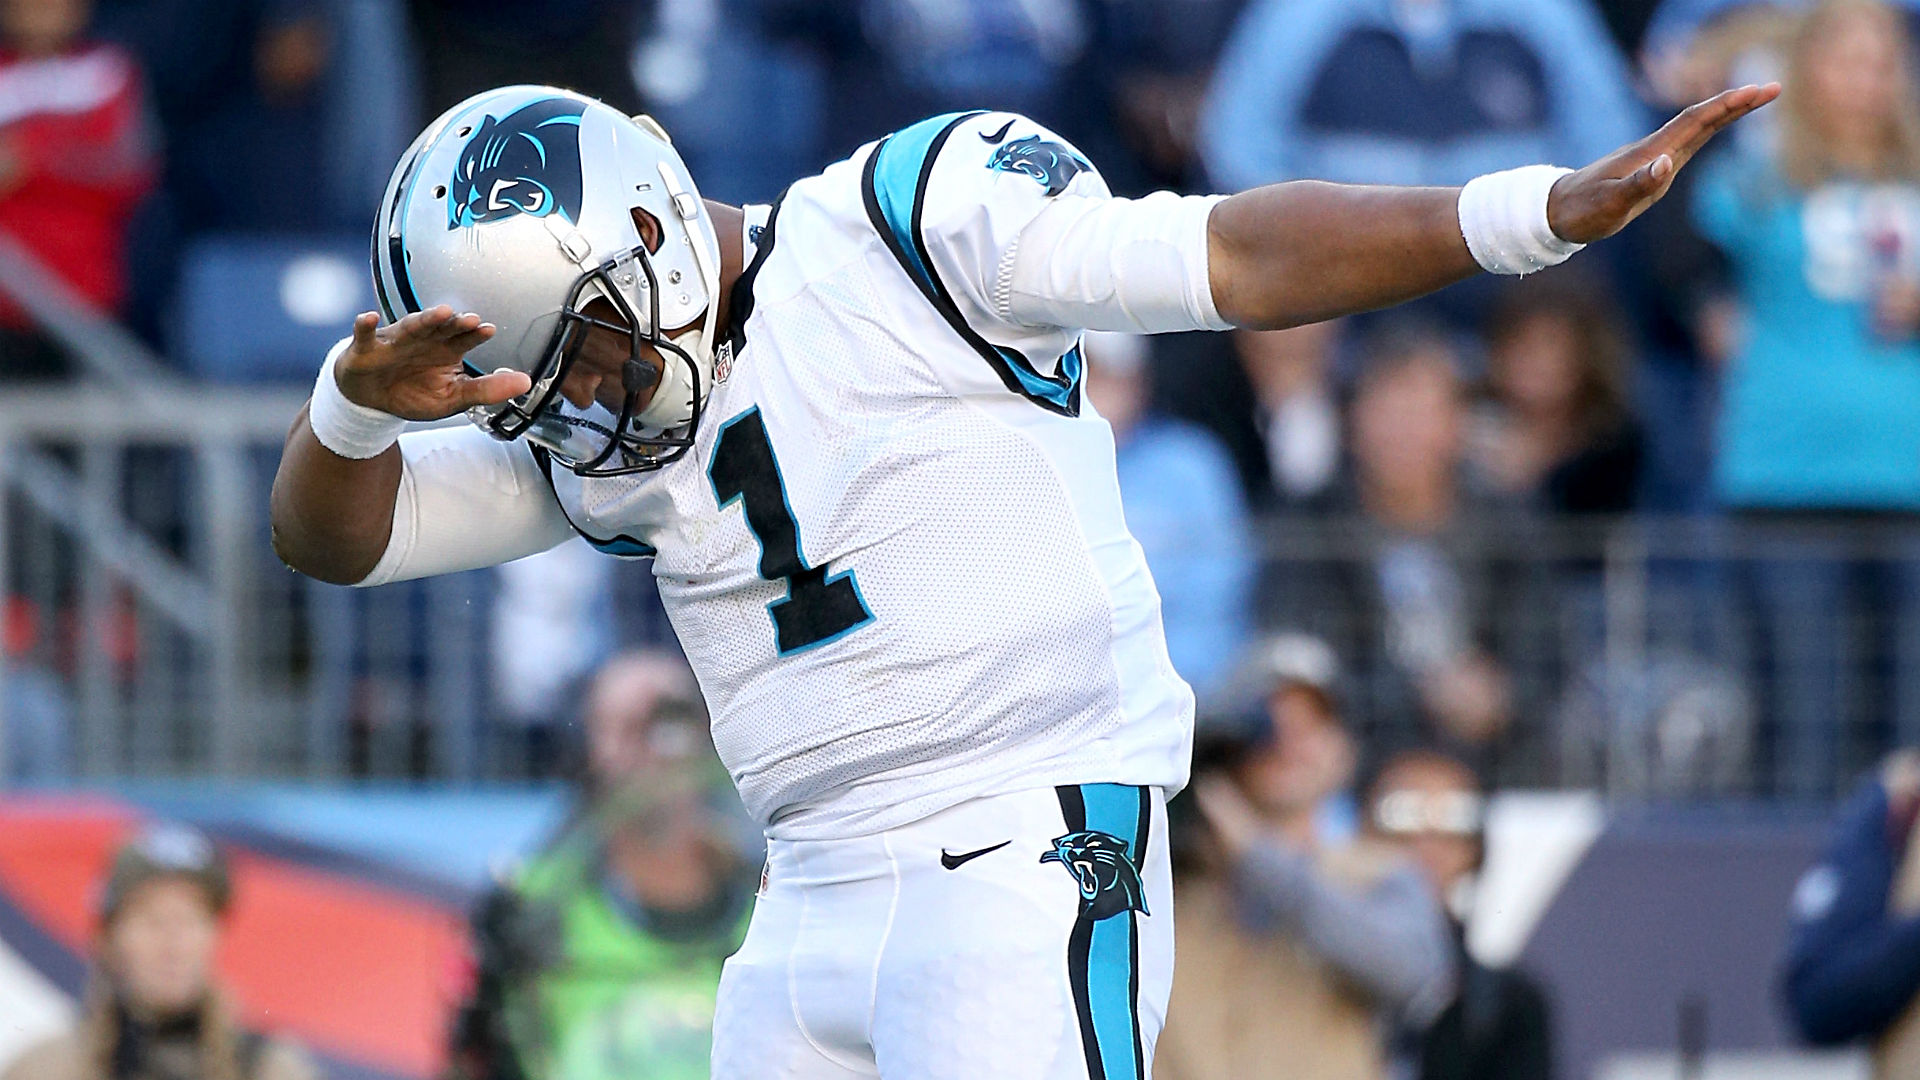 Panthers fans ready to dab with Cam Newton on Sunday